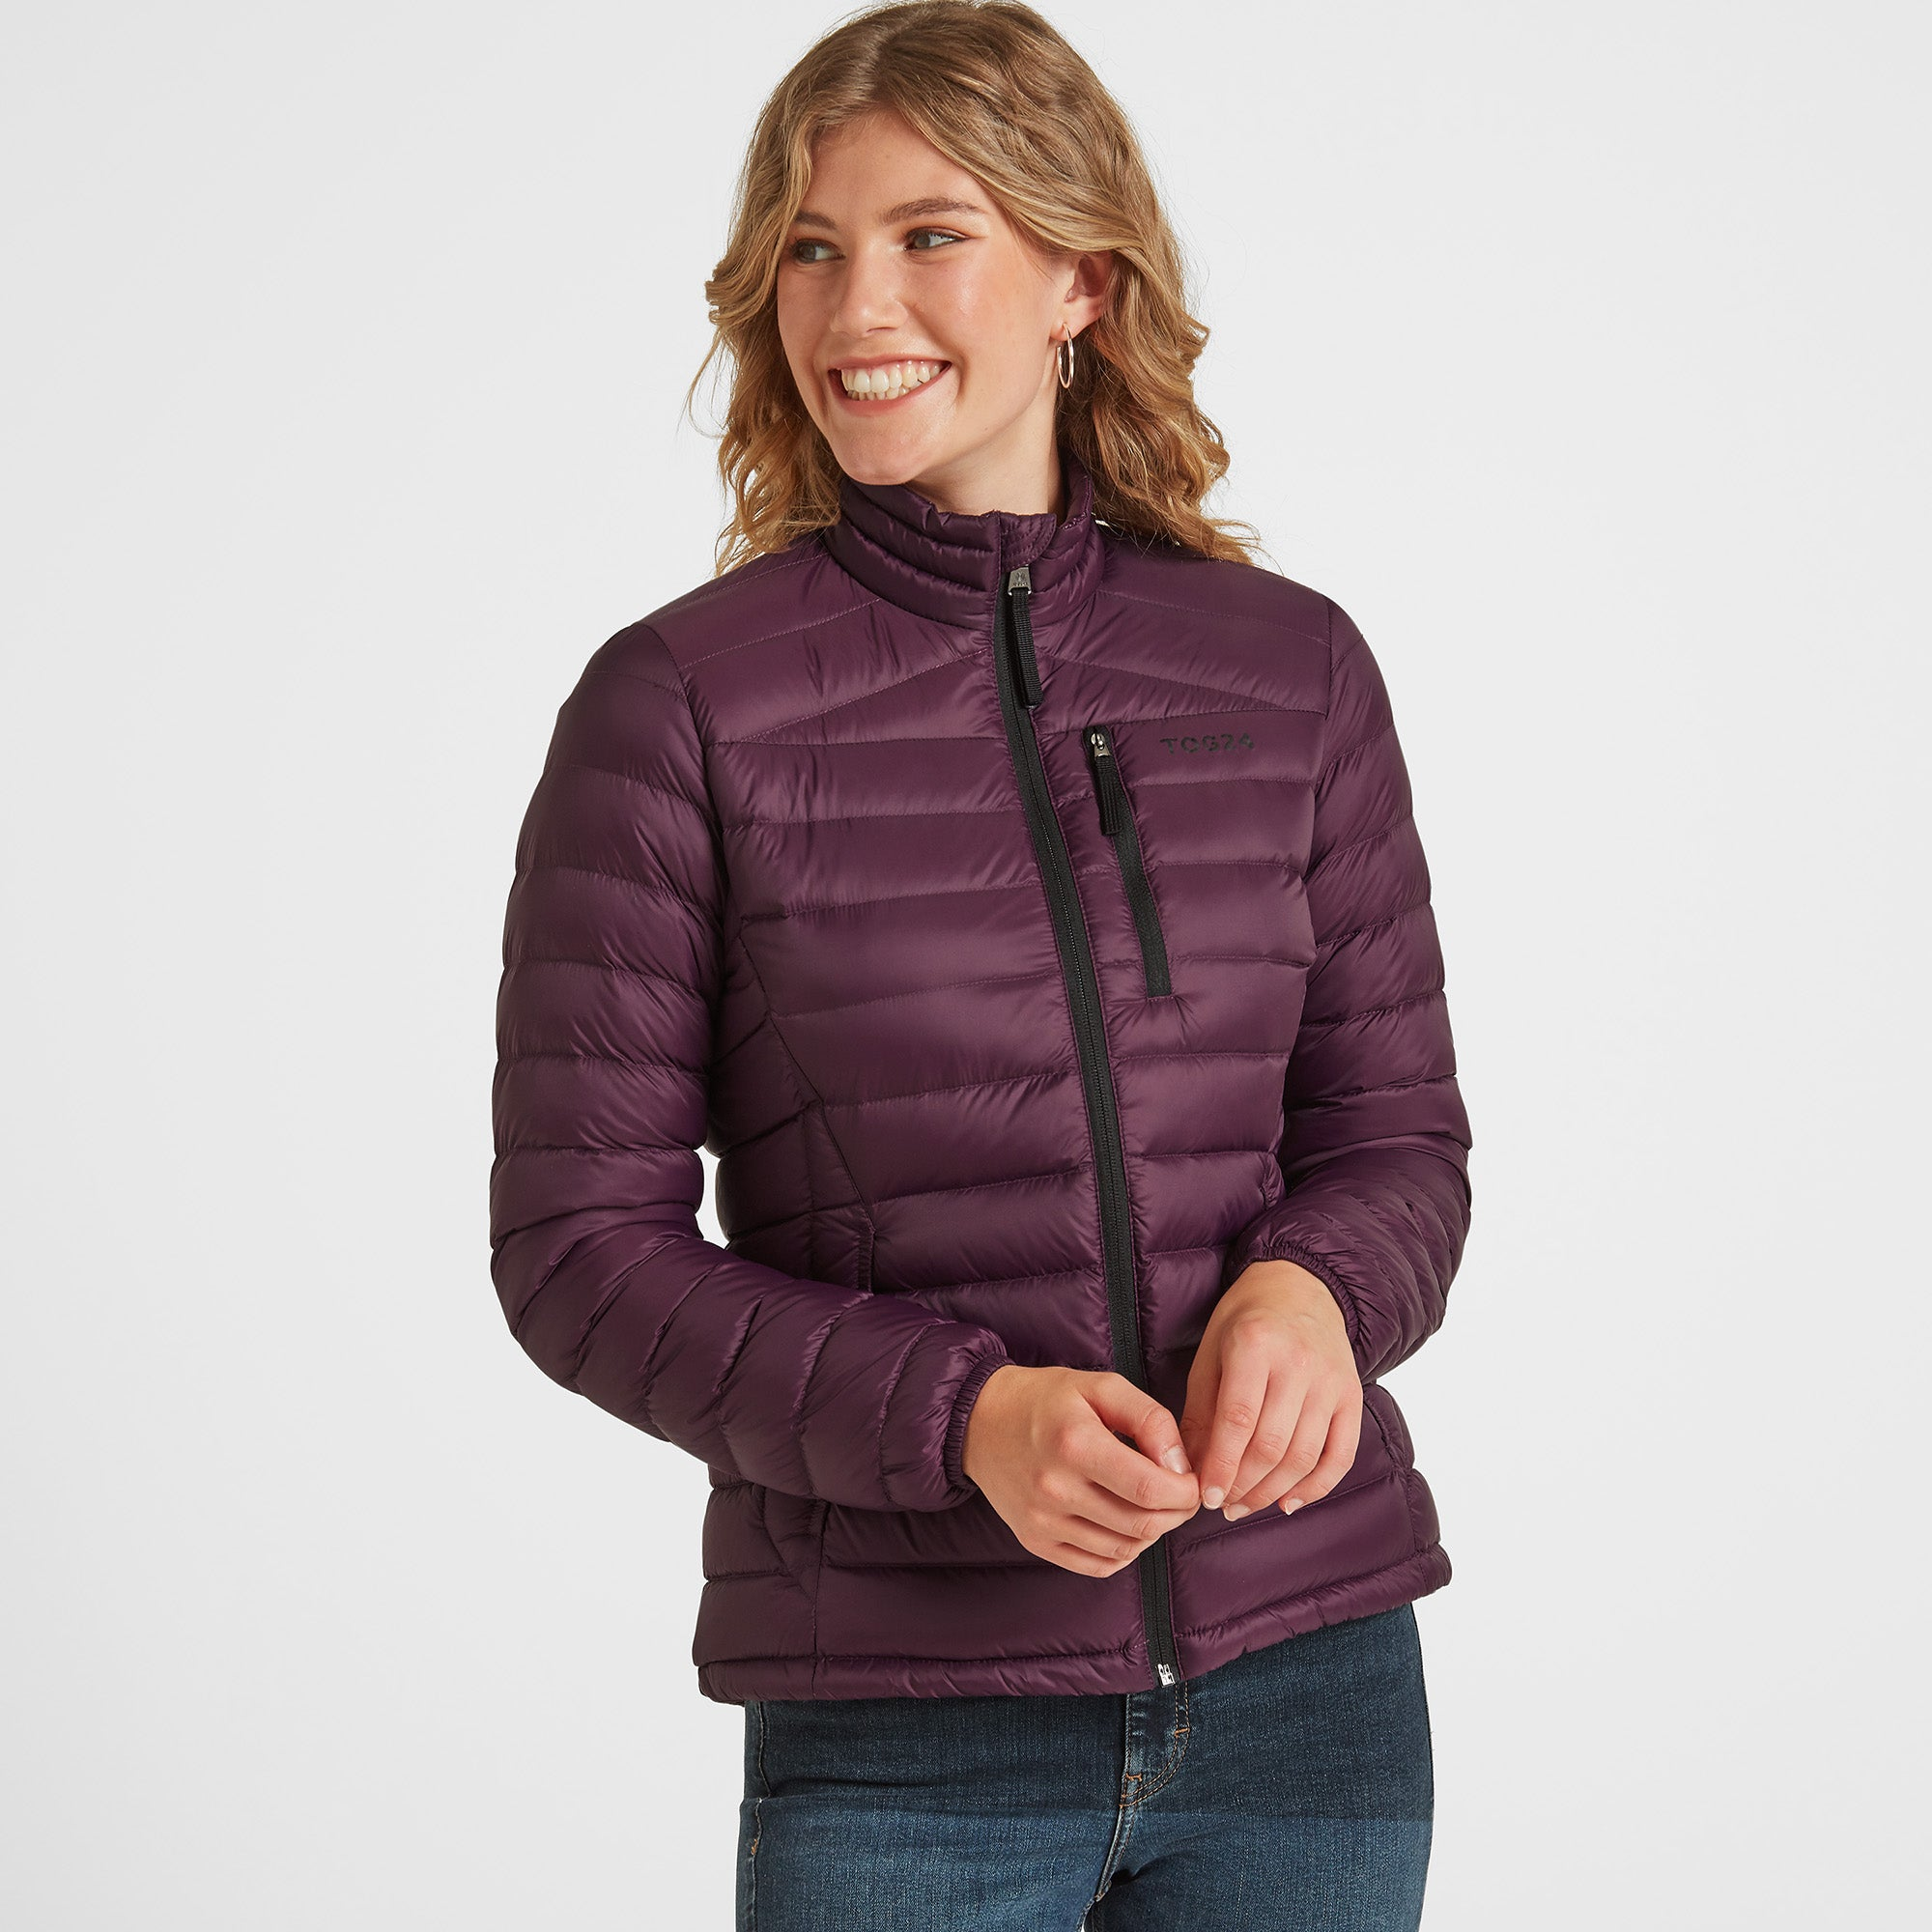 Drax Womens Funnel Down Jacket - Aubergine